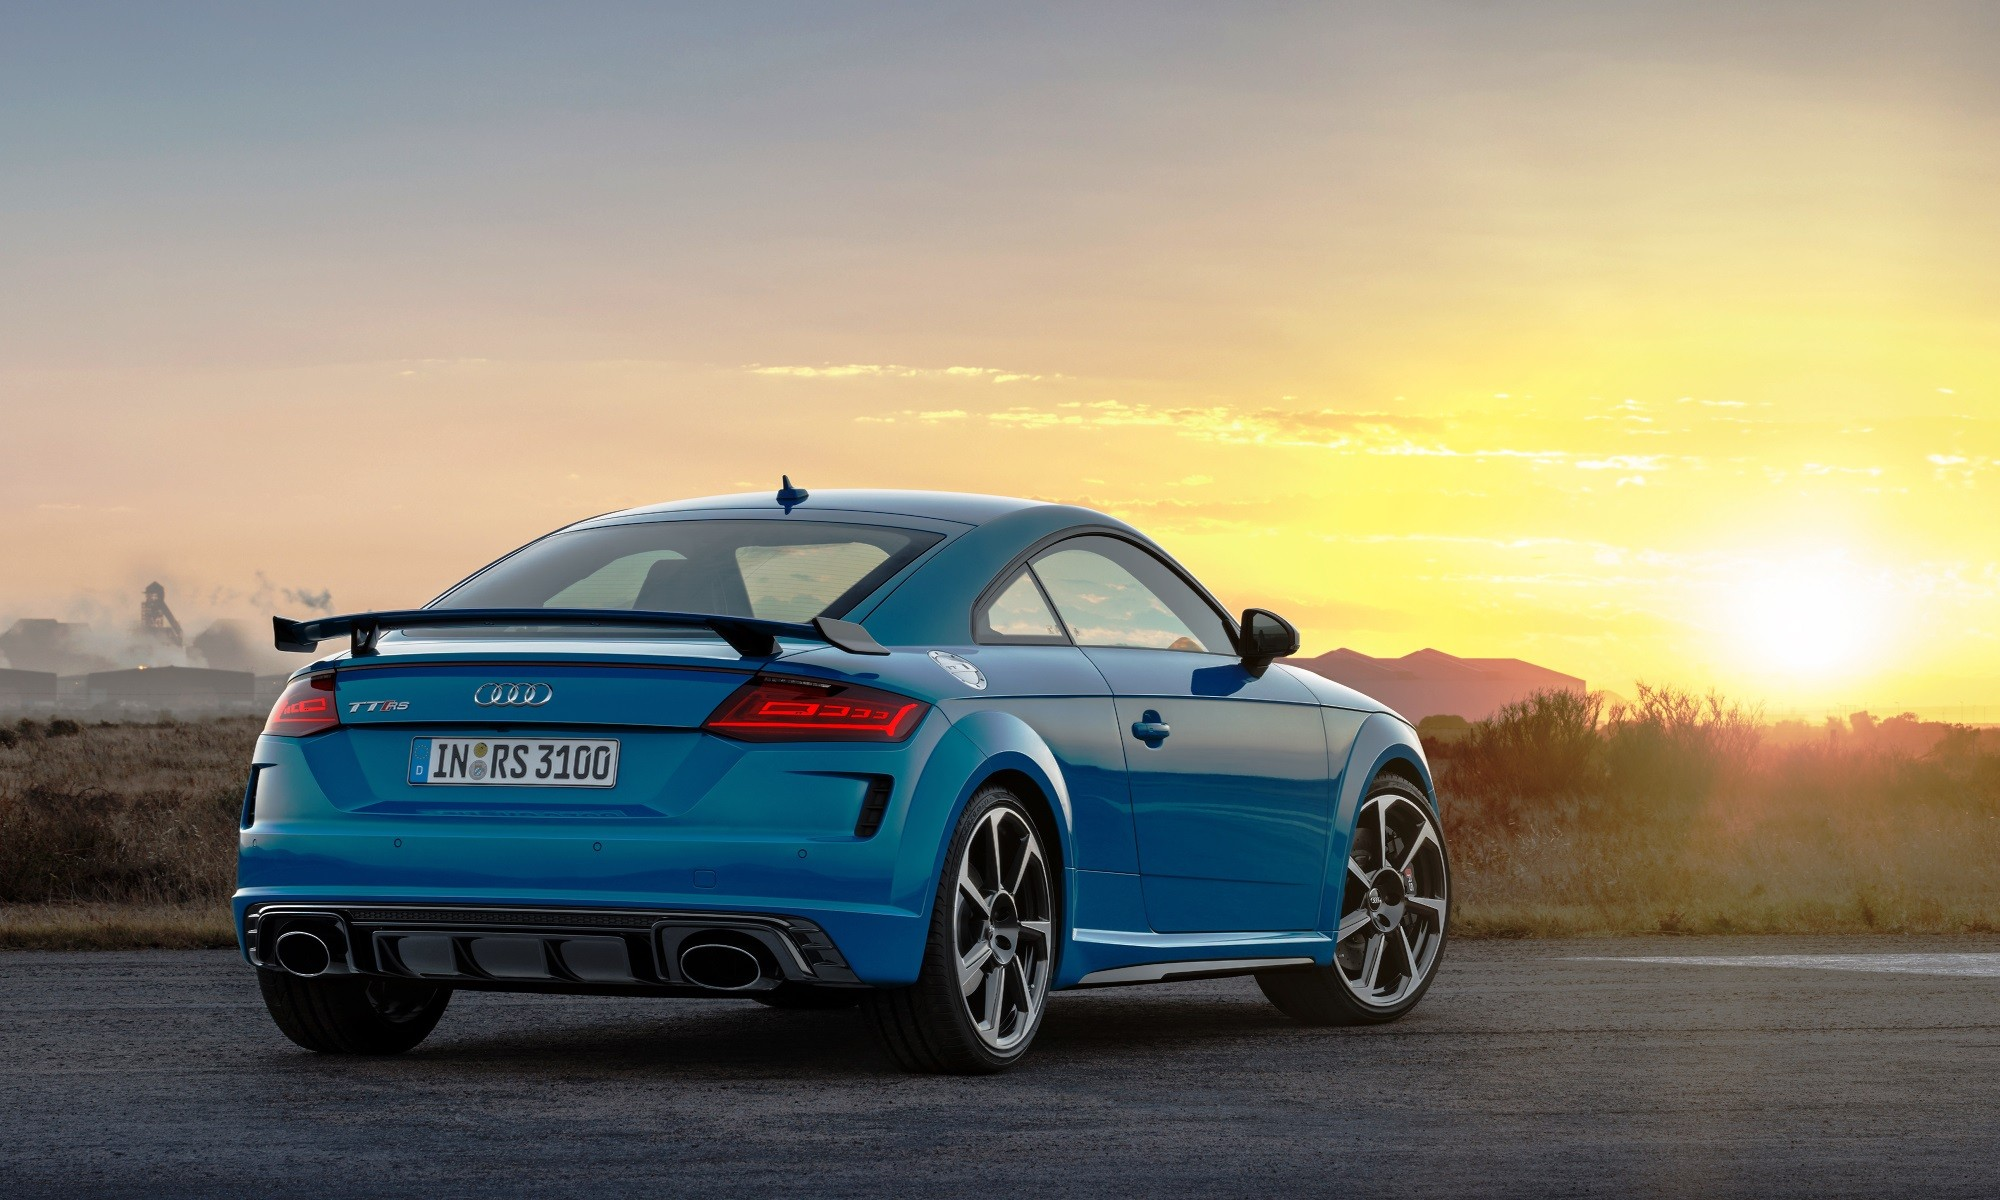 Refreshed Audi TT RS Coupé rear